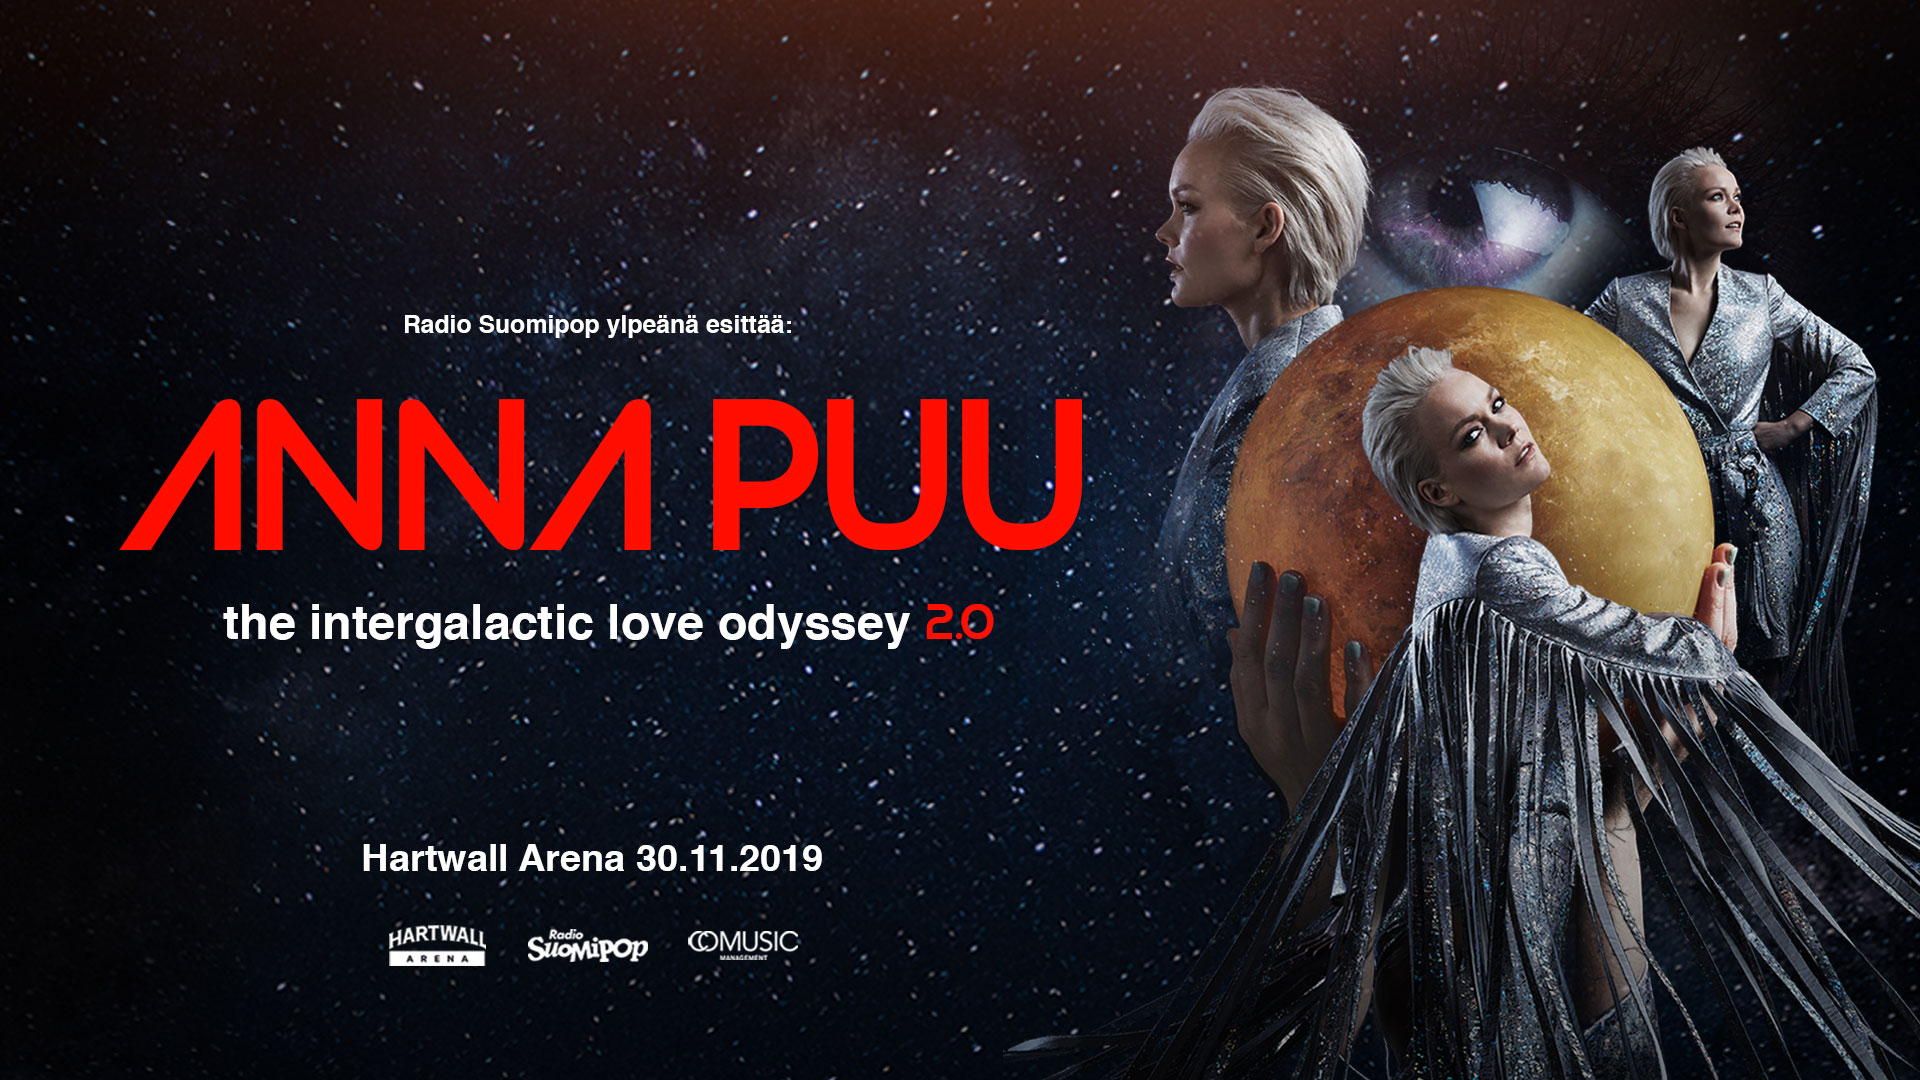 Link to event Anna Puu: The Intergalactic Love Odyssey 2.0